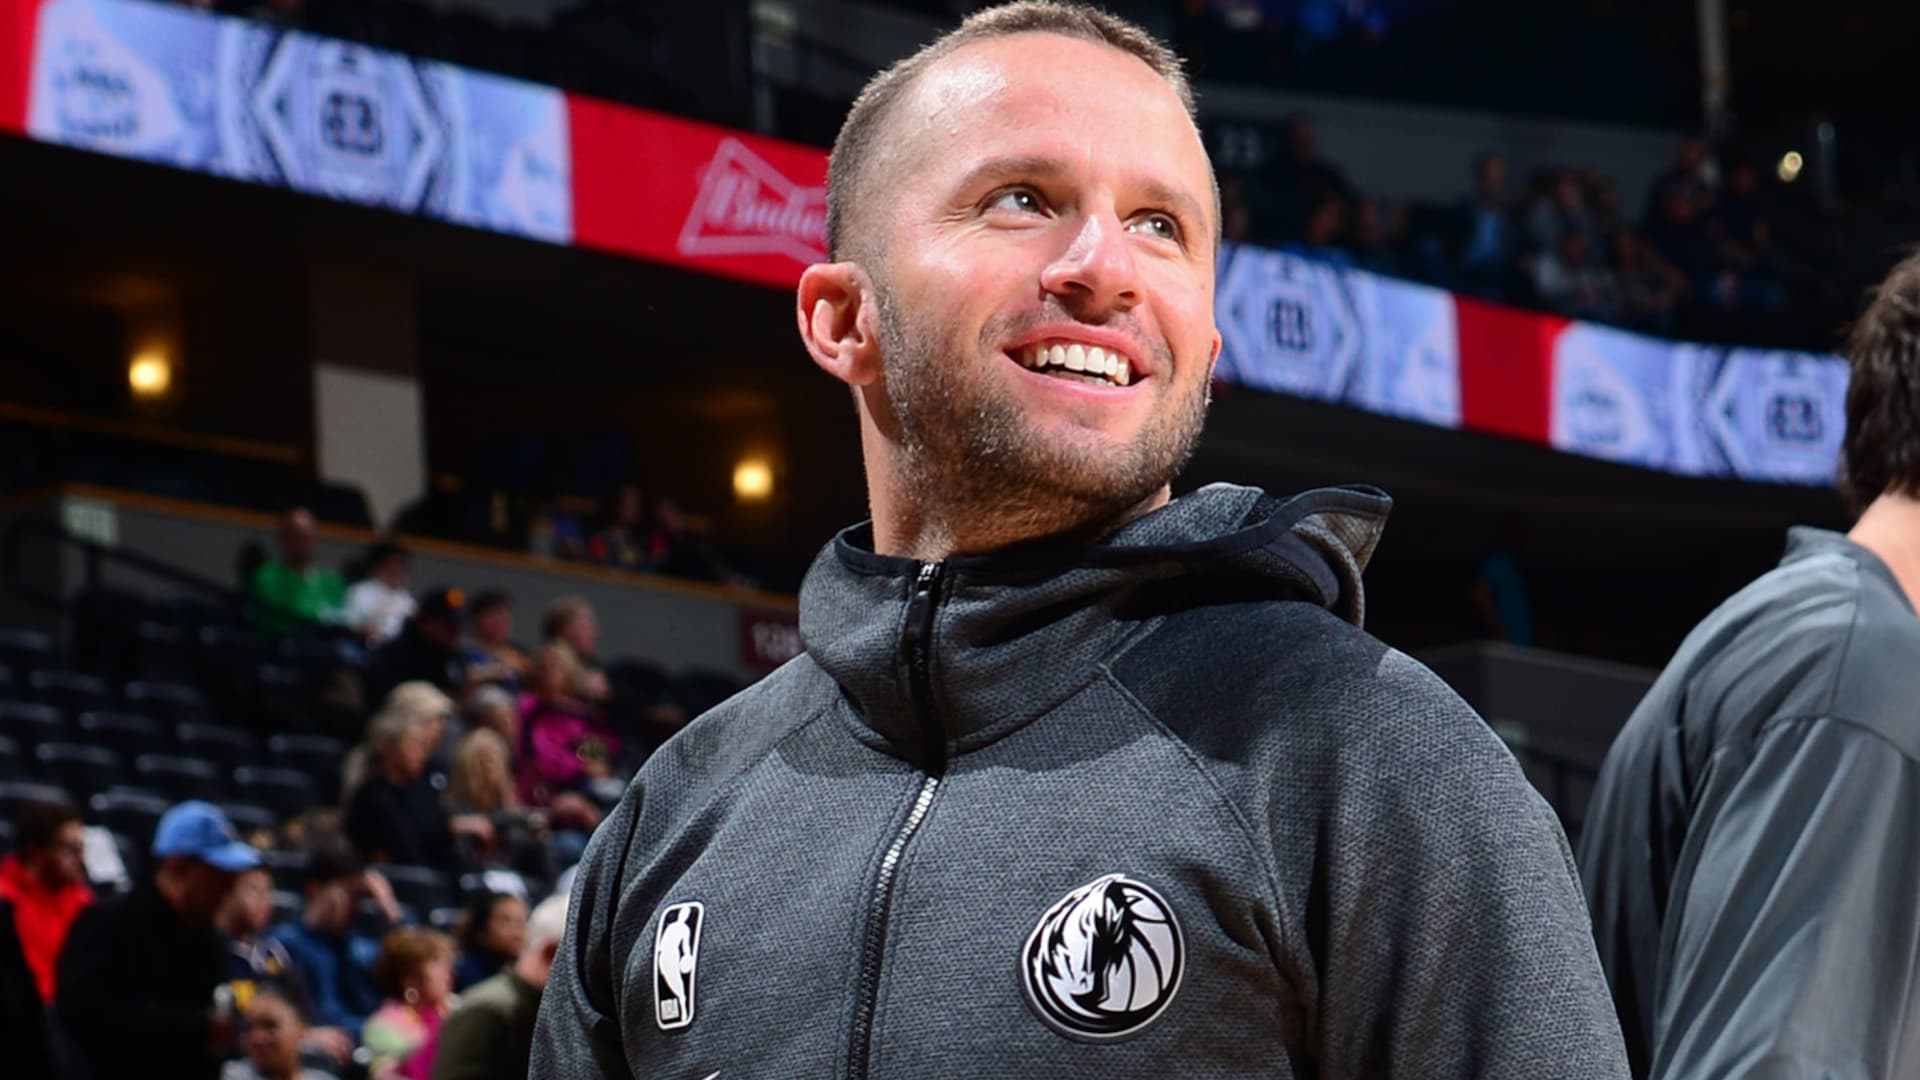 The Q&A: J.J. Barea on twilight of his career, playing with Dirk Nowitzki and more